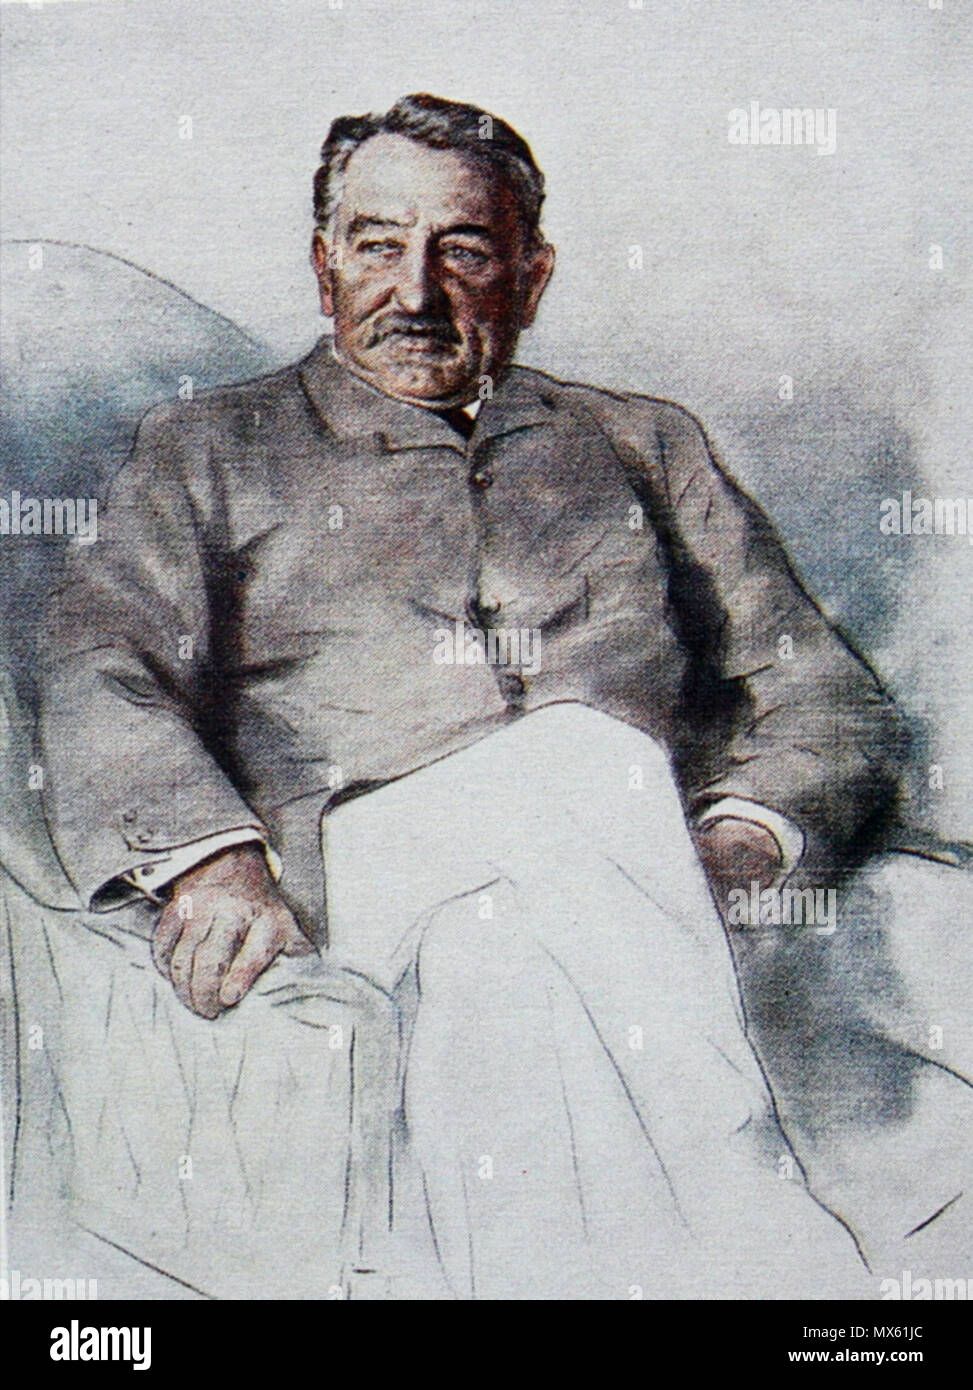 . Cecil John Rhodes 1853-1902 South African mining magnate and politician 120 Cecil john rhodes00 - Stock Image